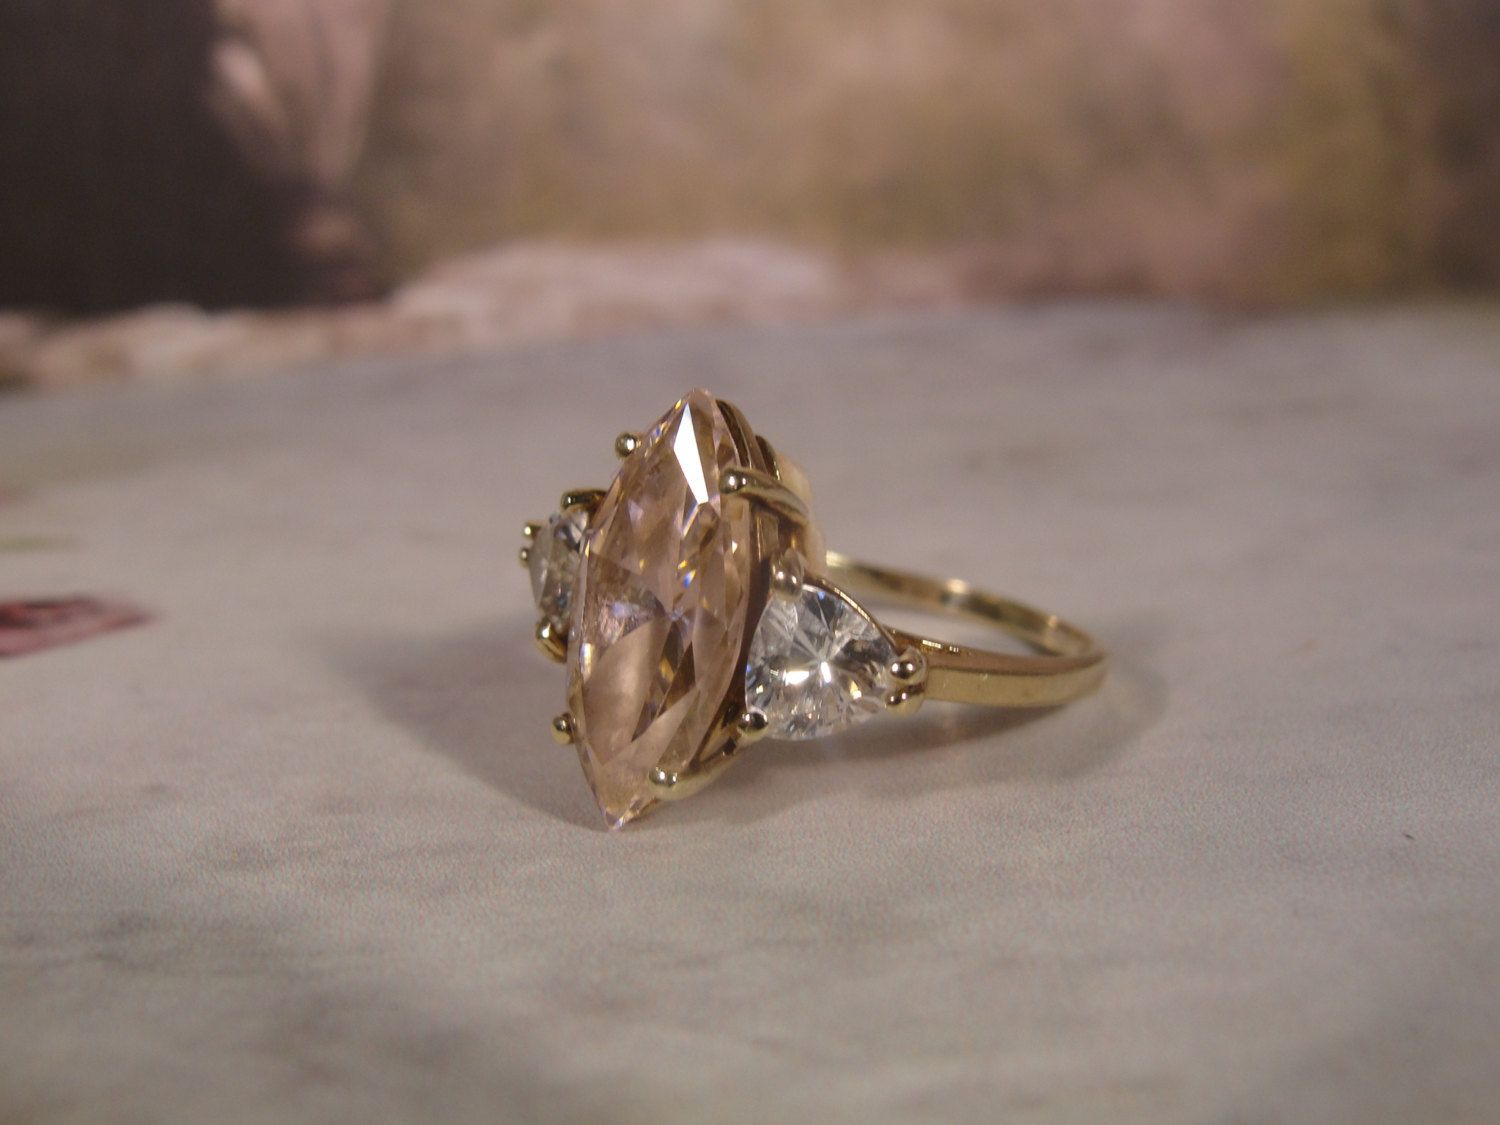 1980s 10k Gold Ring With A Pale Ice Pink Cubic Zirconia Etsy Diamond Sizes 10k Gold Ring Cz Diamond